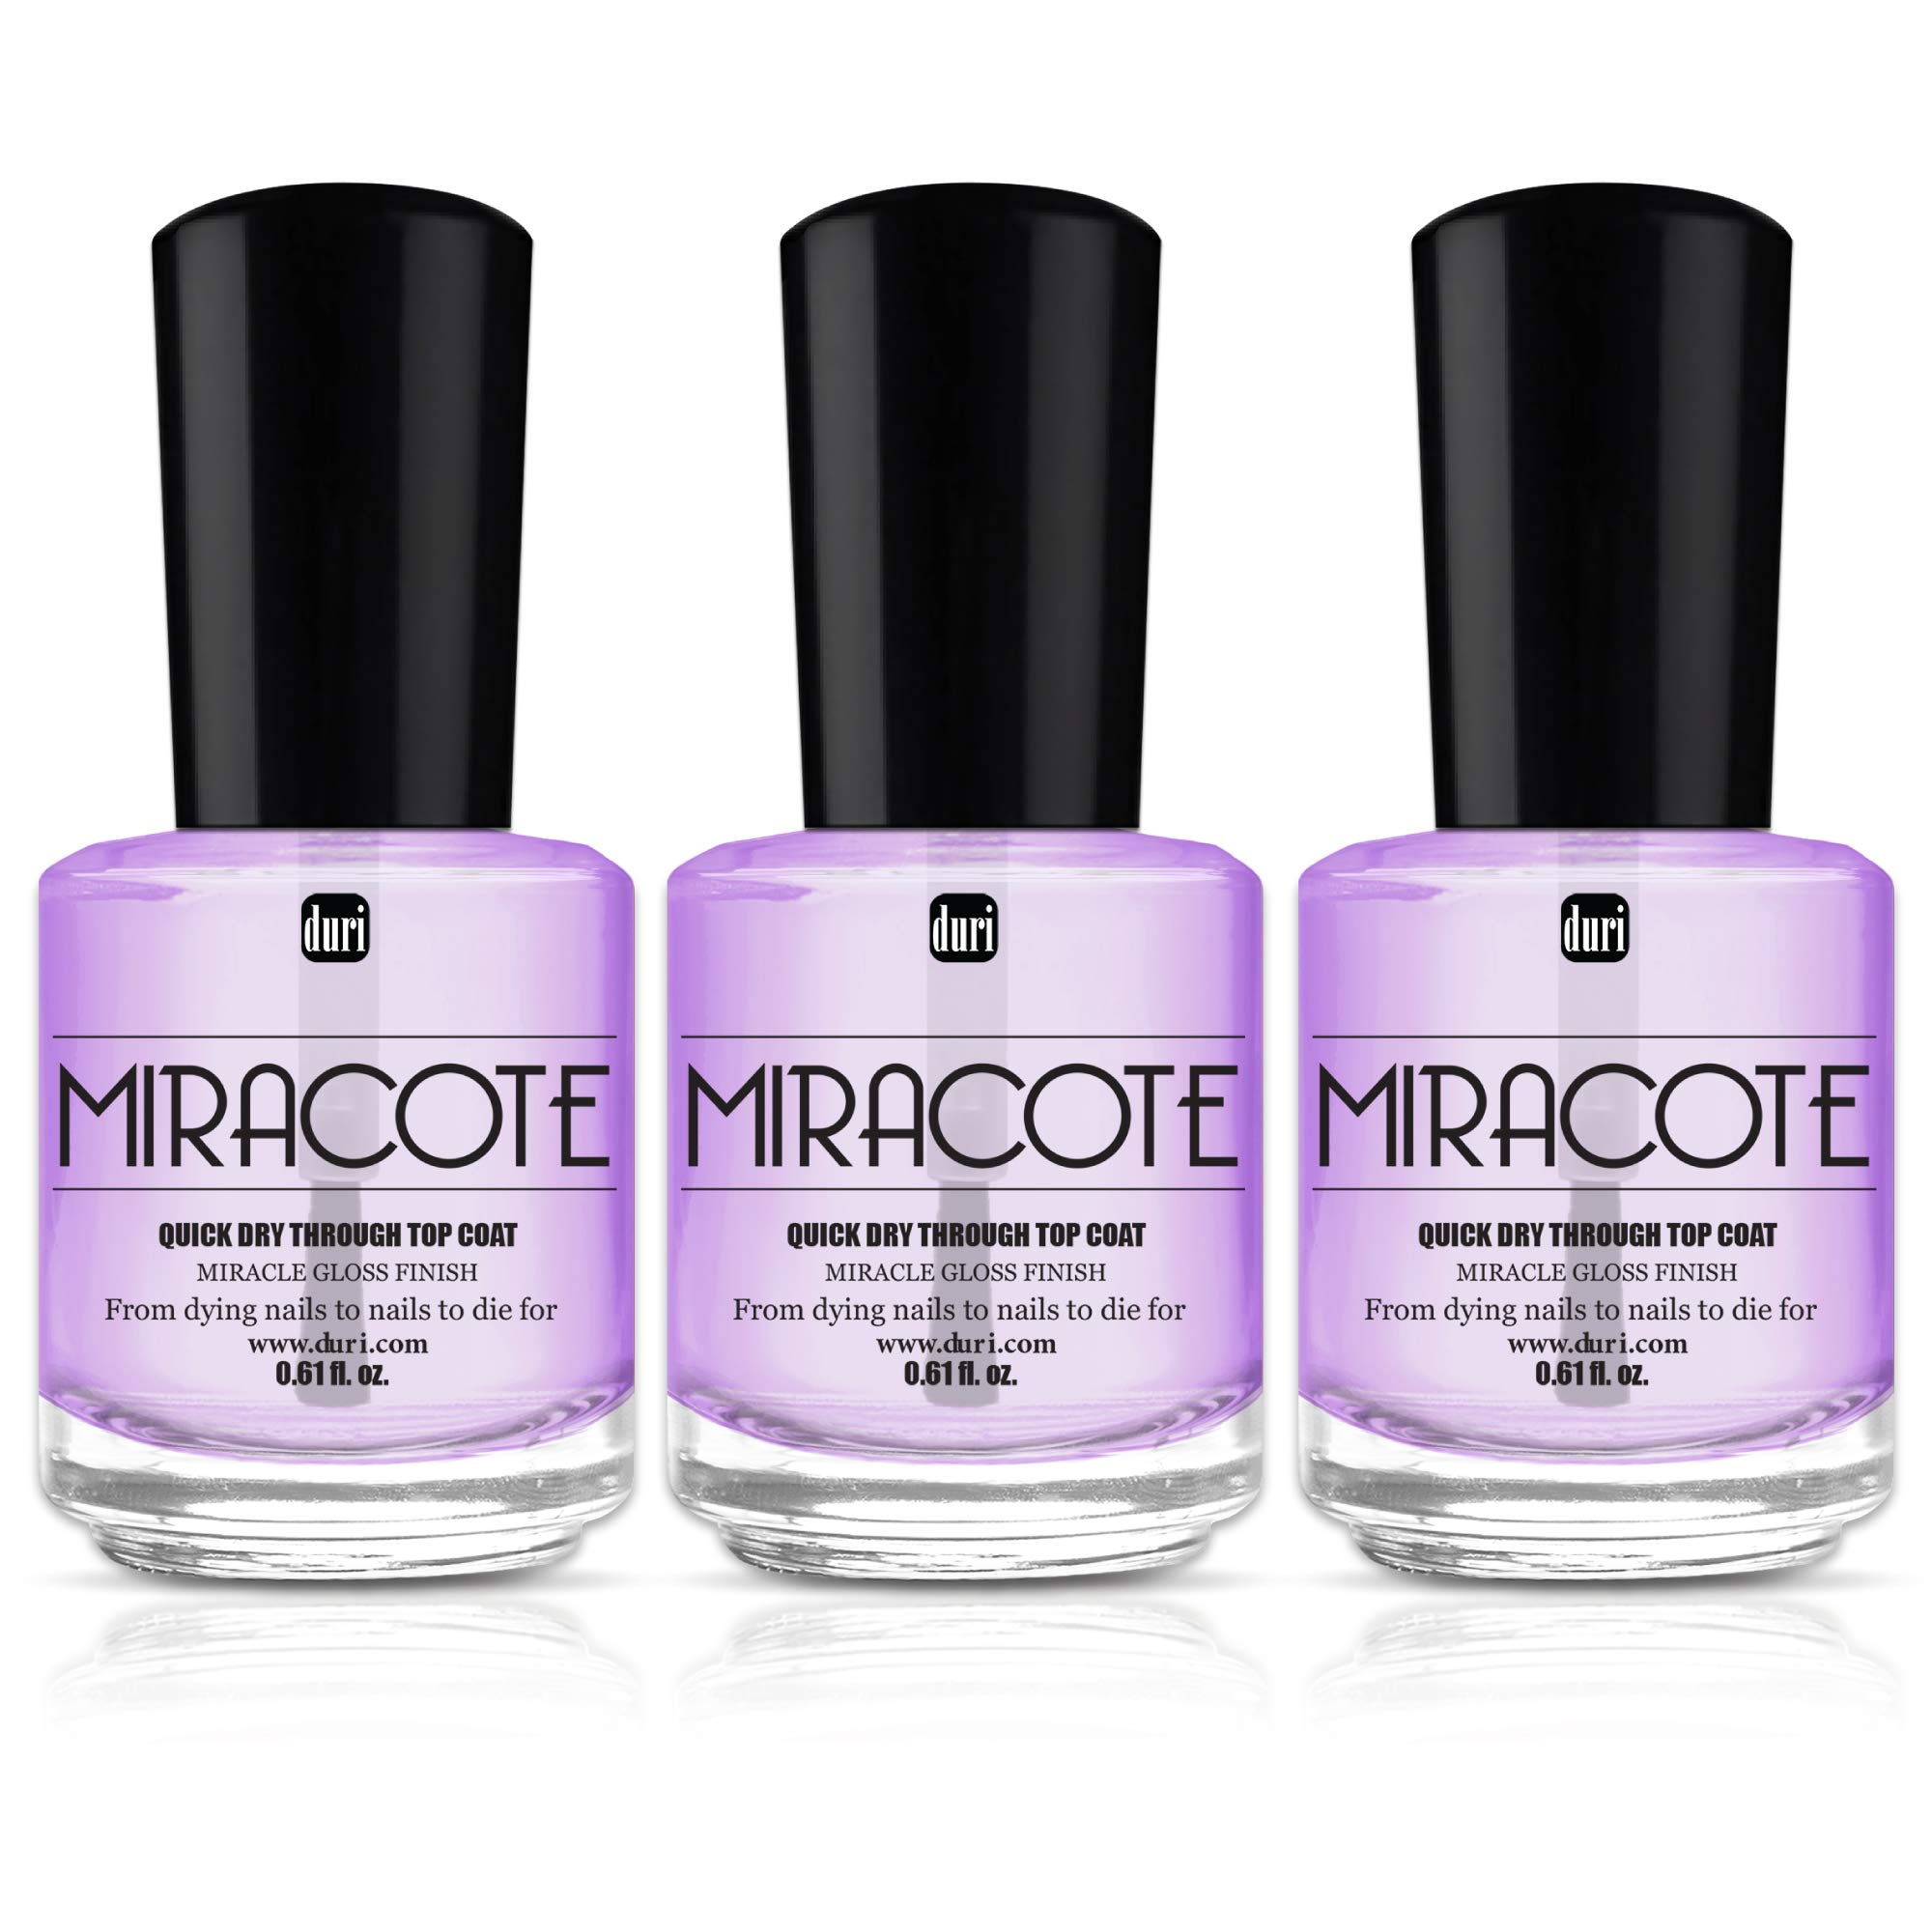 duri Miracote Quick Dry Through Top Coat for Miracle Gloss Finish Nails, None Yellowing, Low Viscosity, Protects Polish from Chipping, Pack of 3